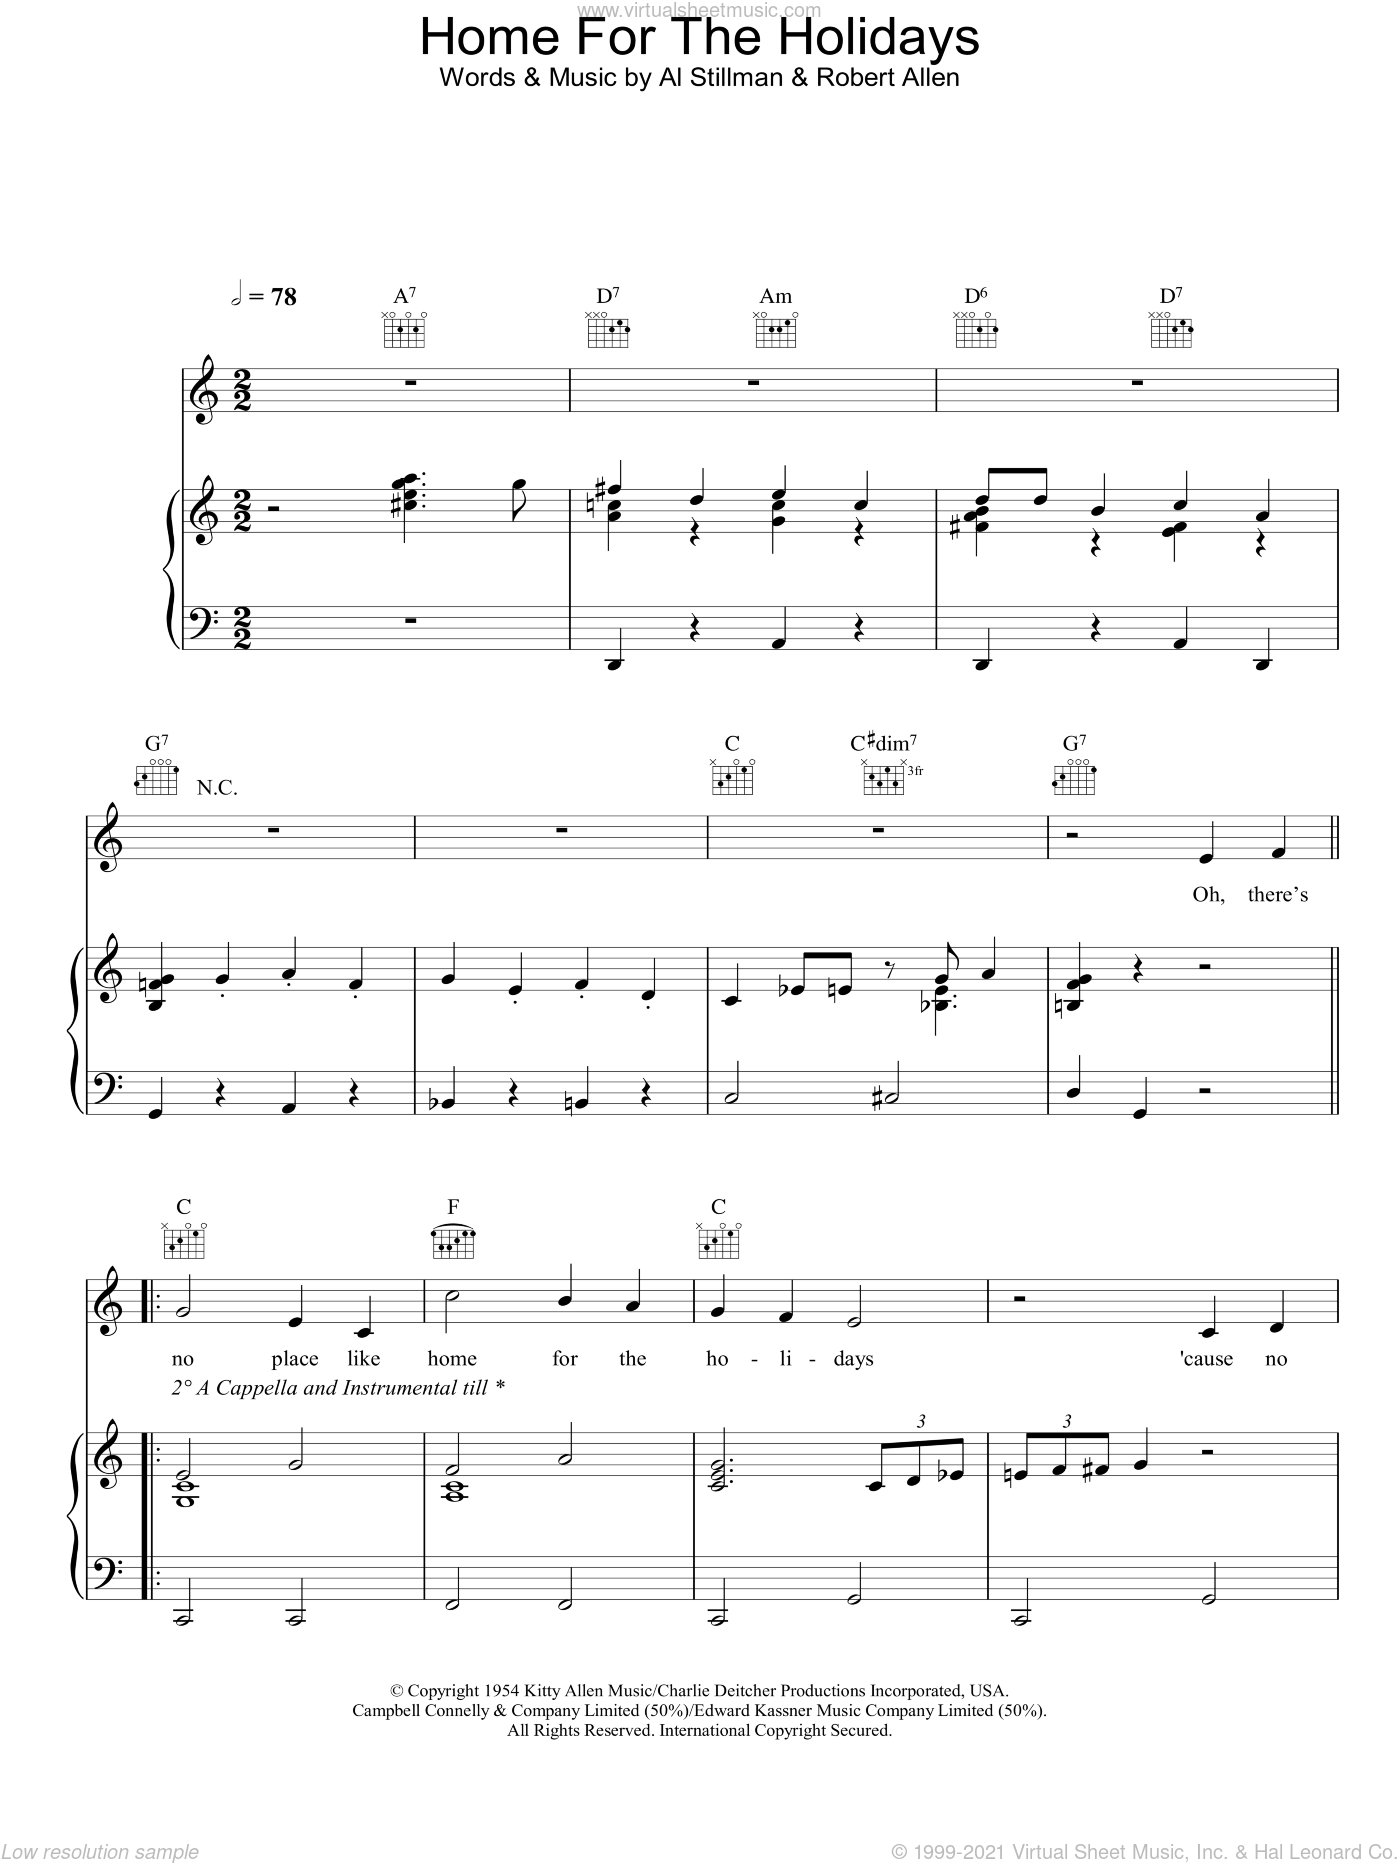 (There's No Place Like) Home For The Holidays sheet music for voice, piano or guitar by Robert Allen, Perry Como and Al Stillman. Score Image Preview.